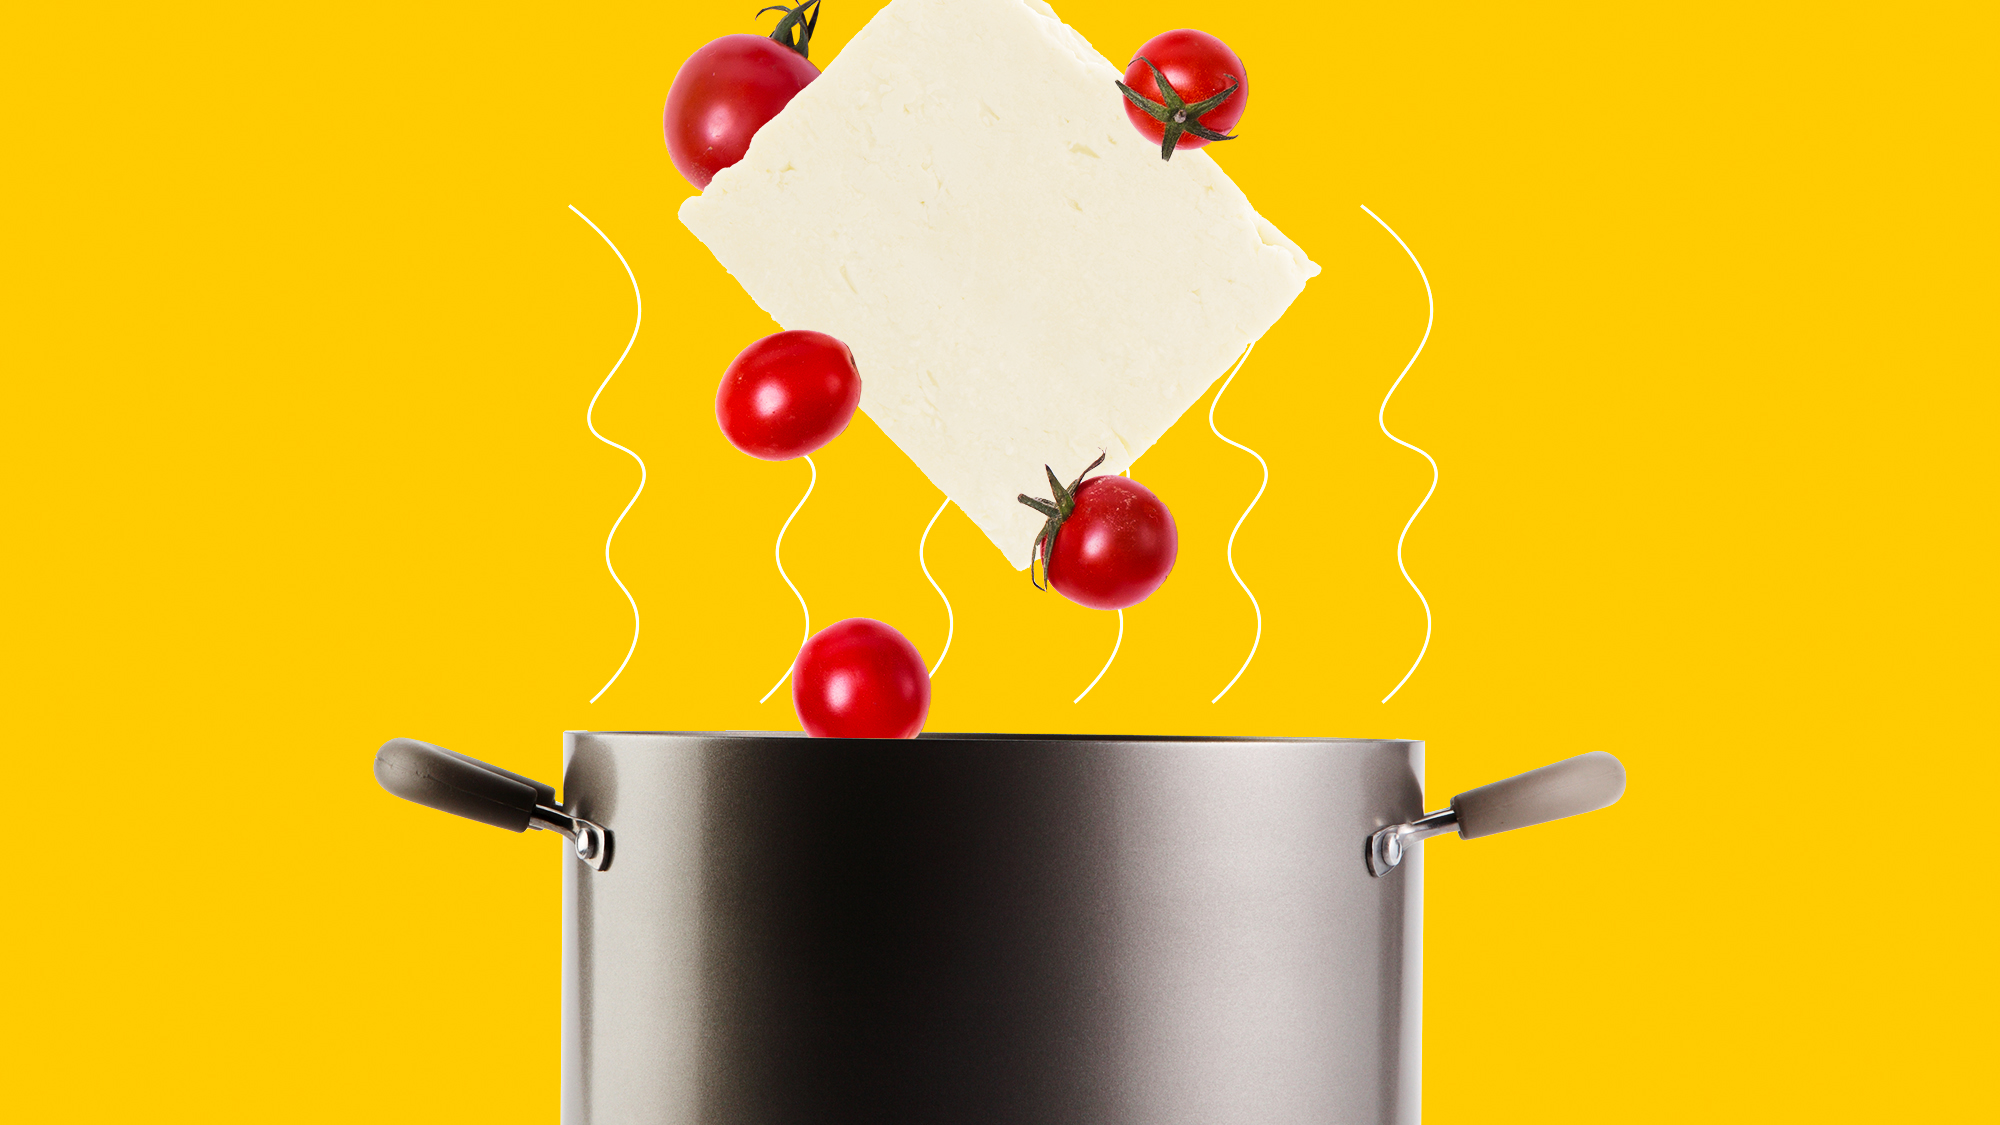 a block of feta cheese and cherry tomatoes falling into a pot on a designed backrgound